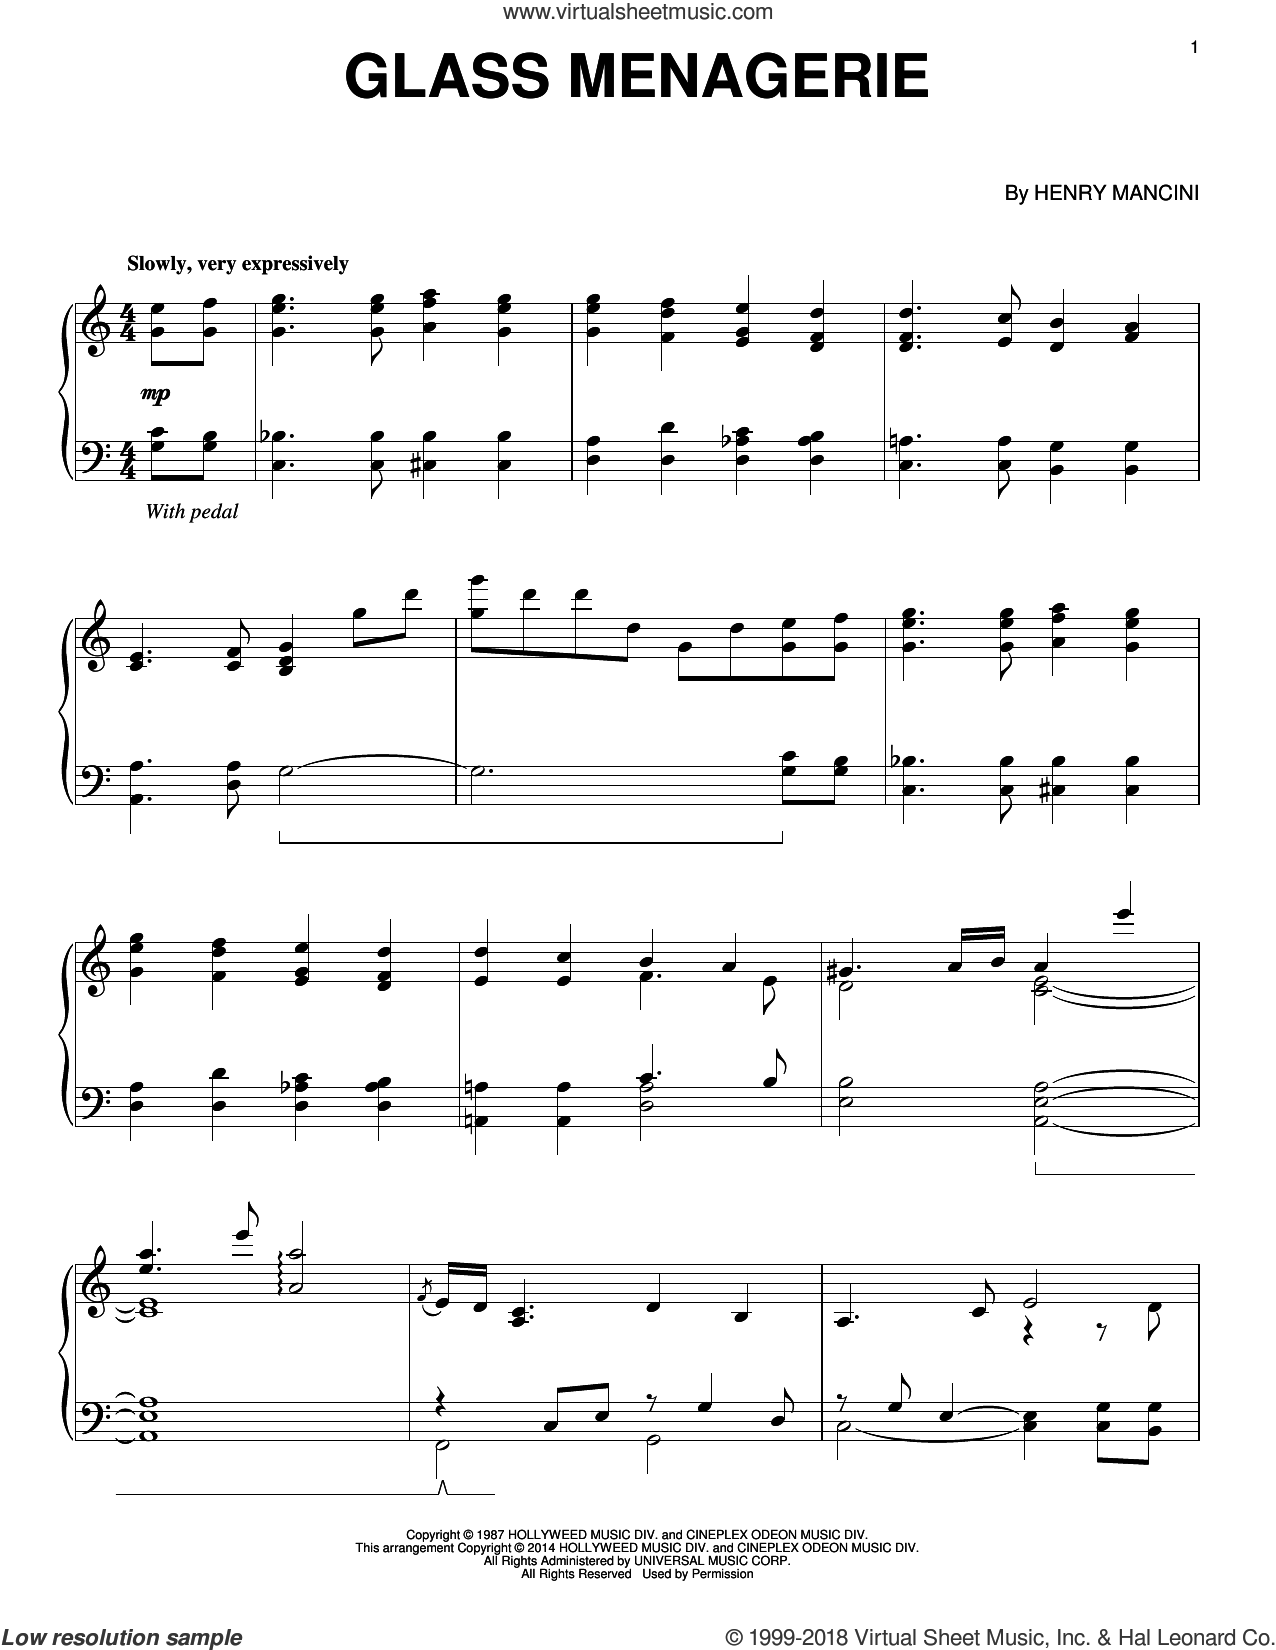 Glass Menagerie sheet music for piano solo by Henry Mancini, intermediate